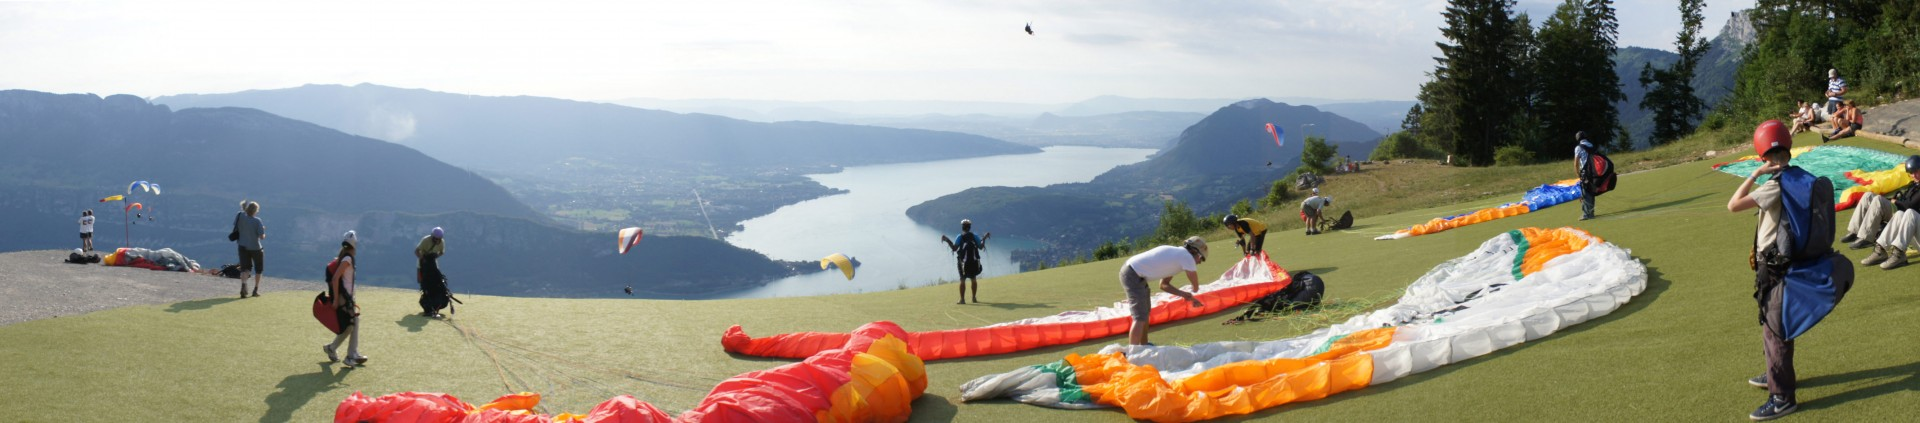 stages-parapente-annecy-forclaz-87